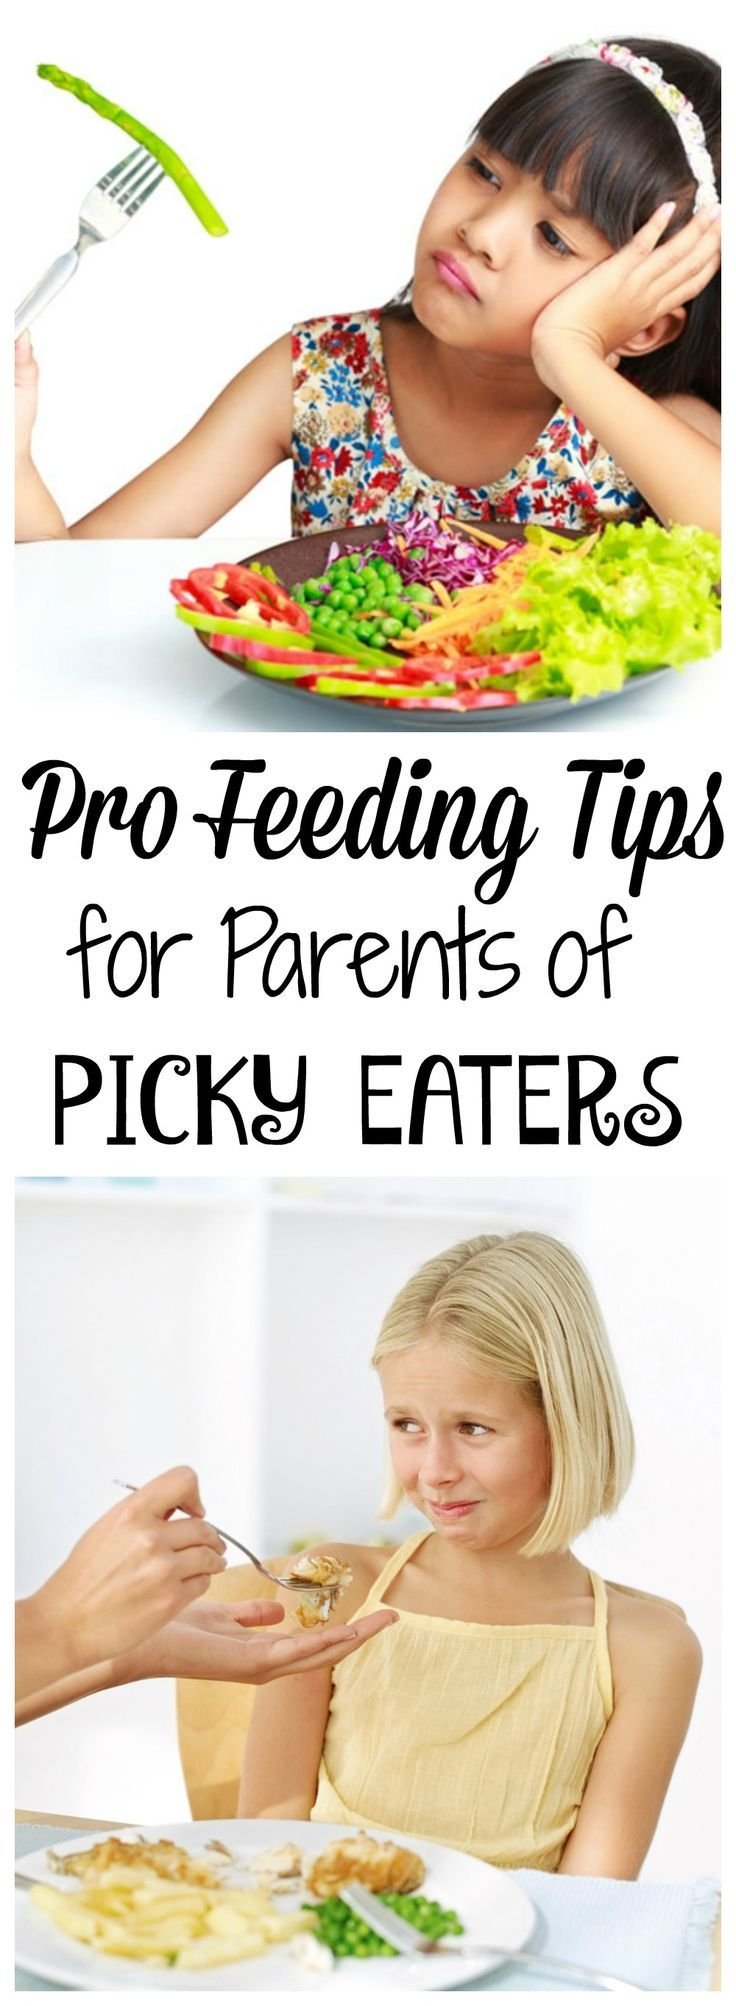 Check out my Top 10 Pro Feeding Tips for Parents of Picky Eaters! #nutrition101 #RDapproved